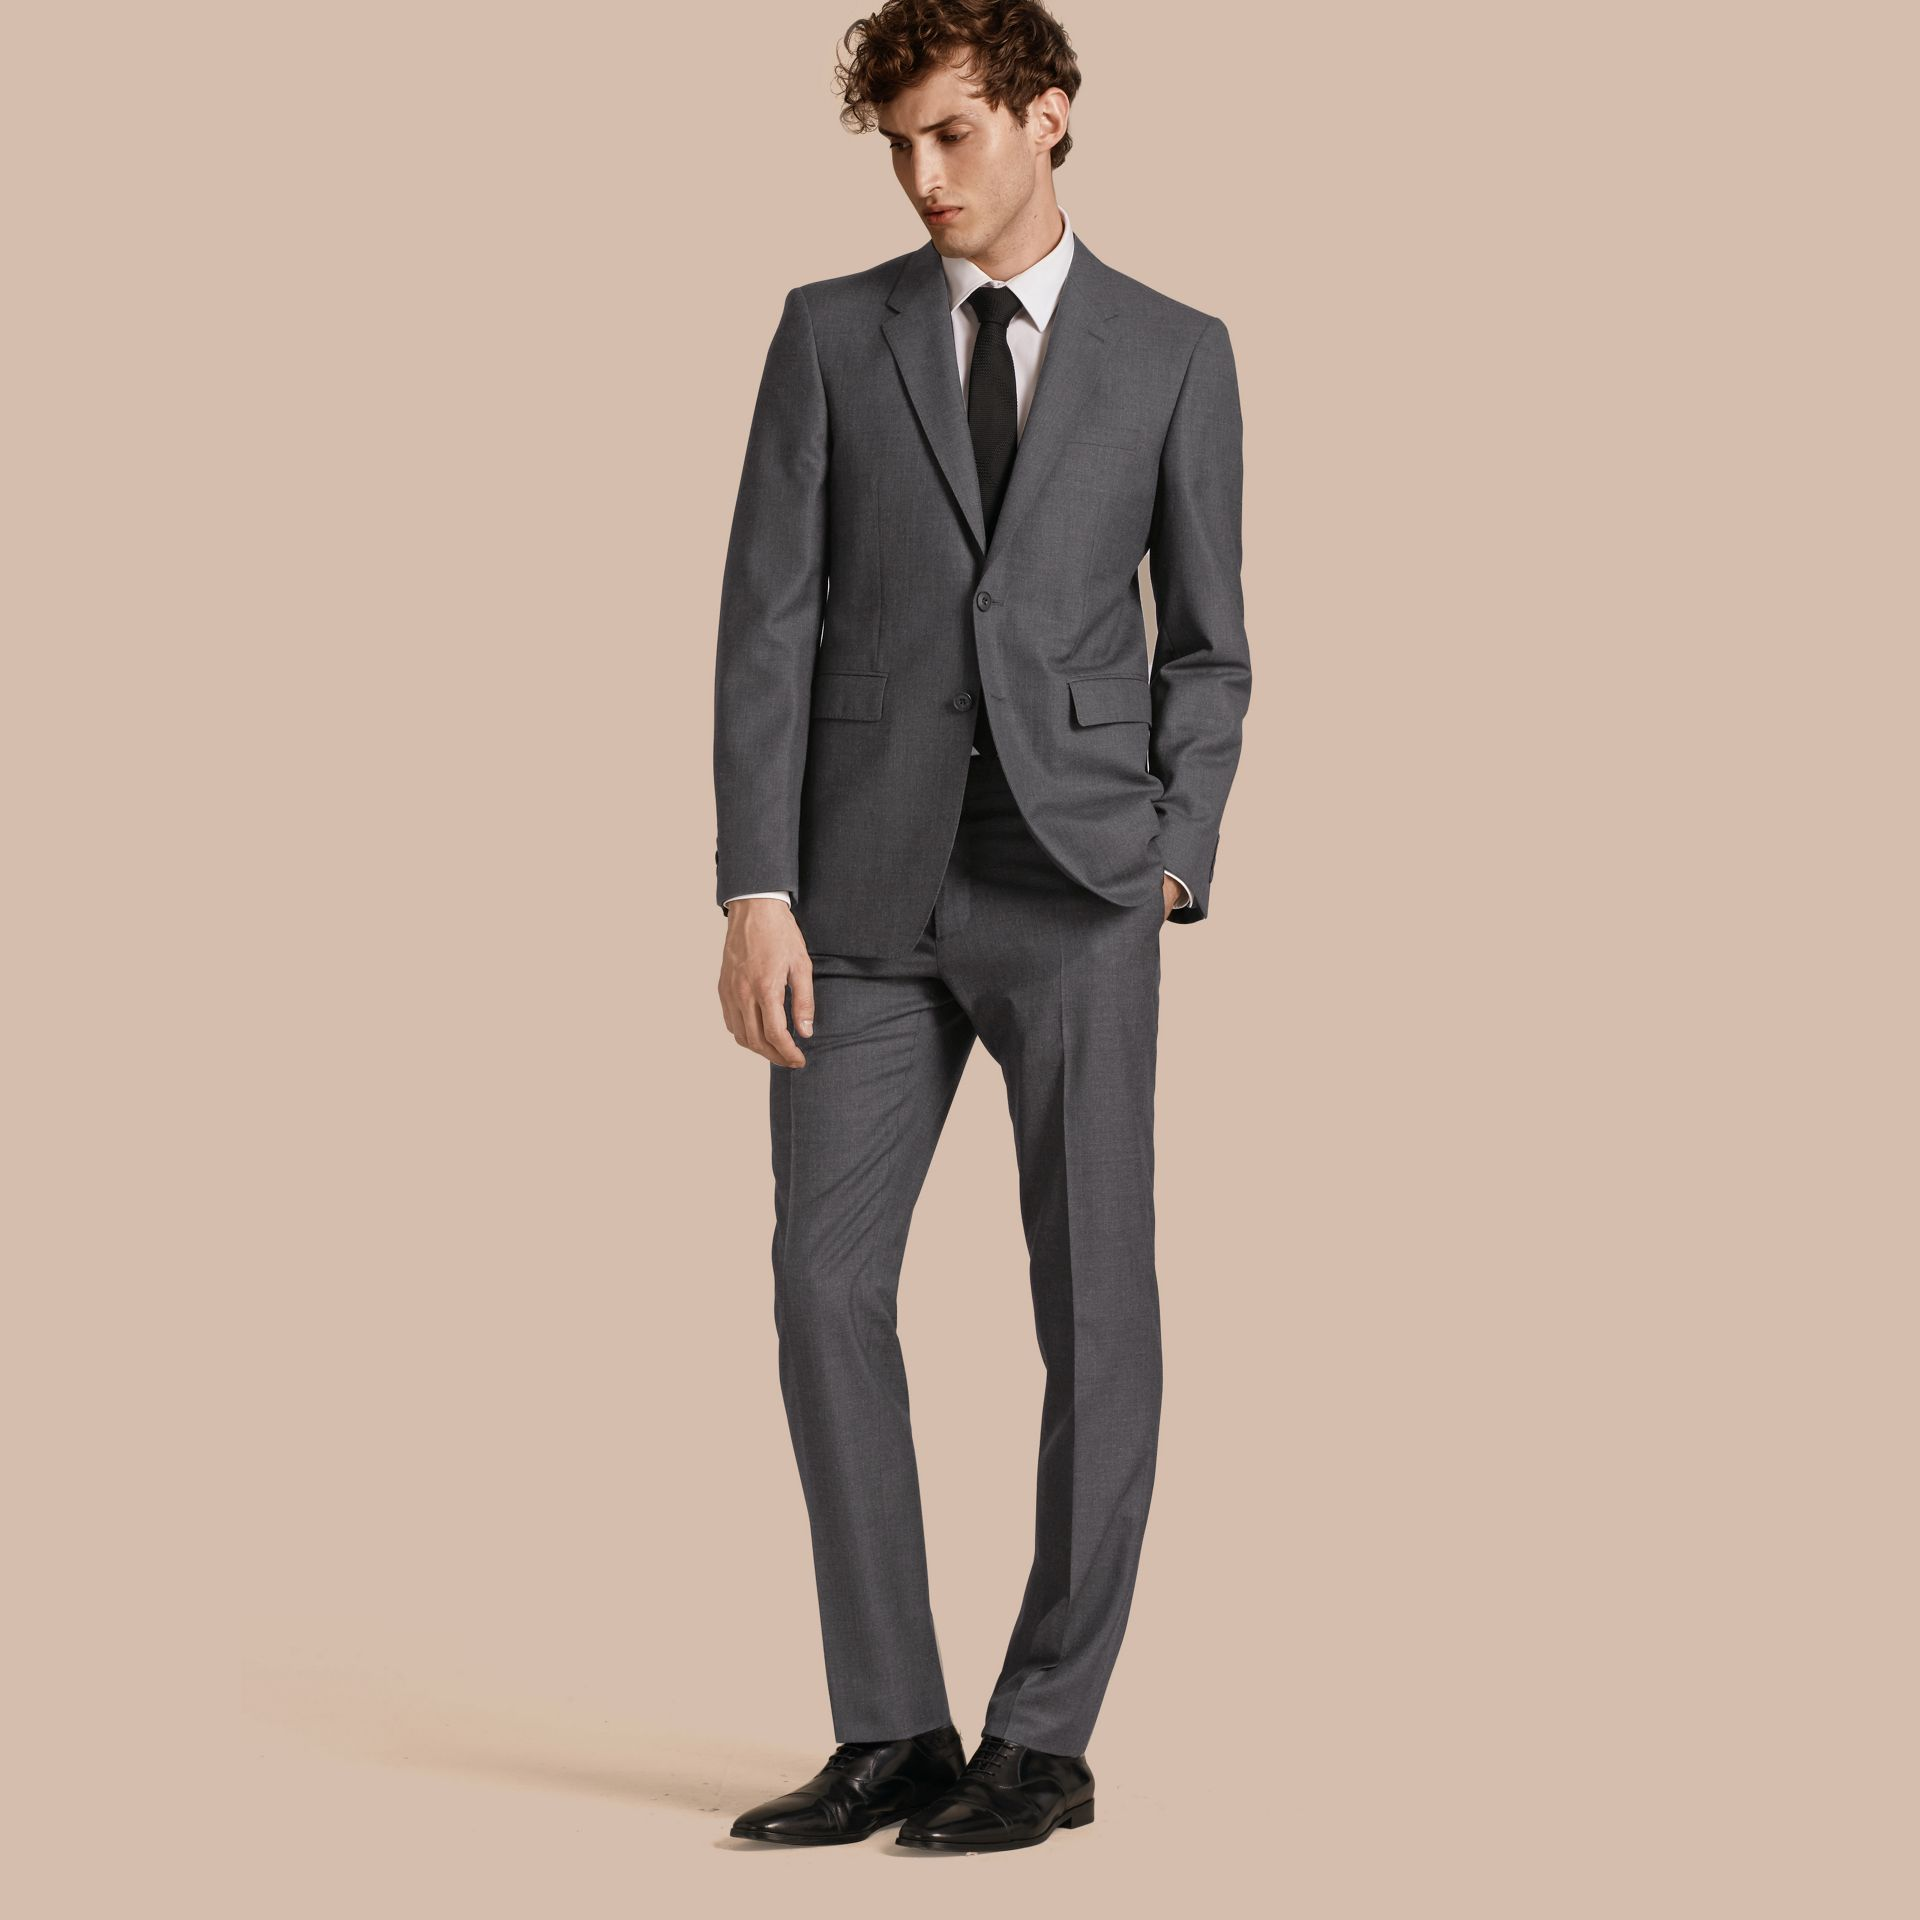 Charcoal Modern Fit Wool Part-canvas Suit Charcoal - gallery image 1